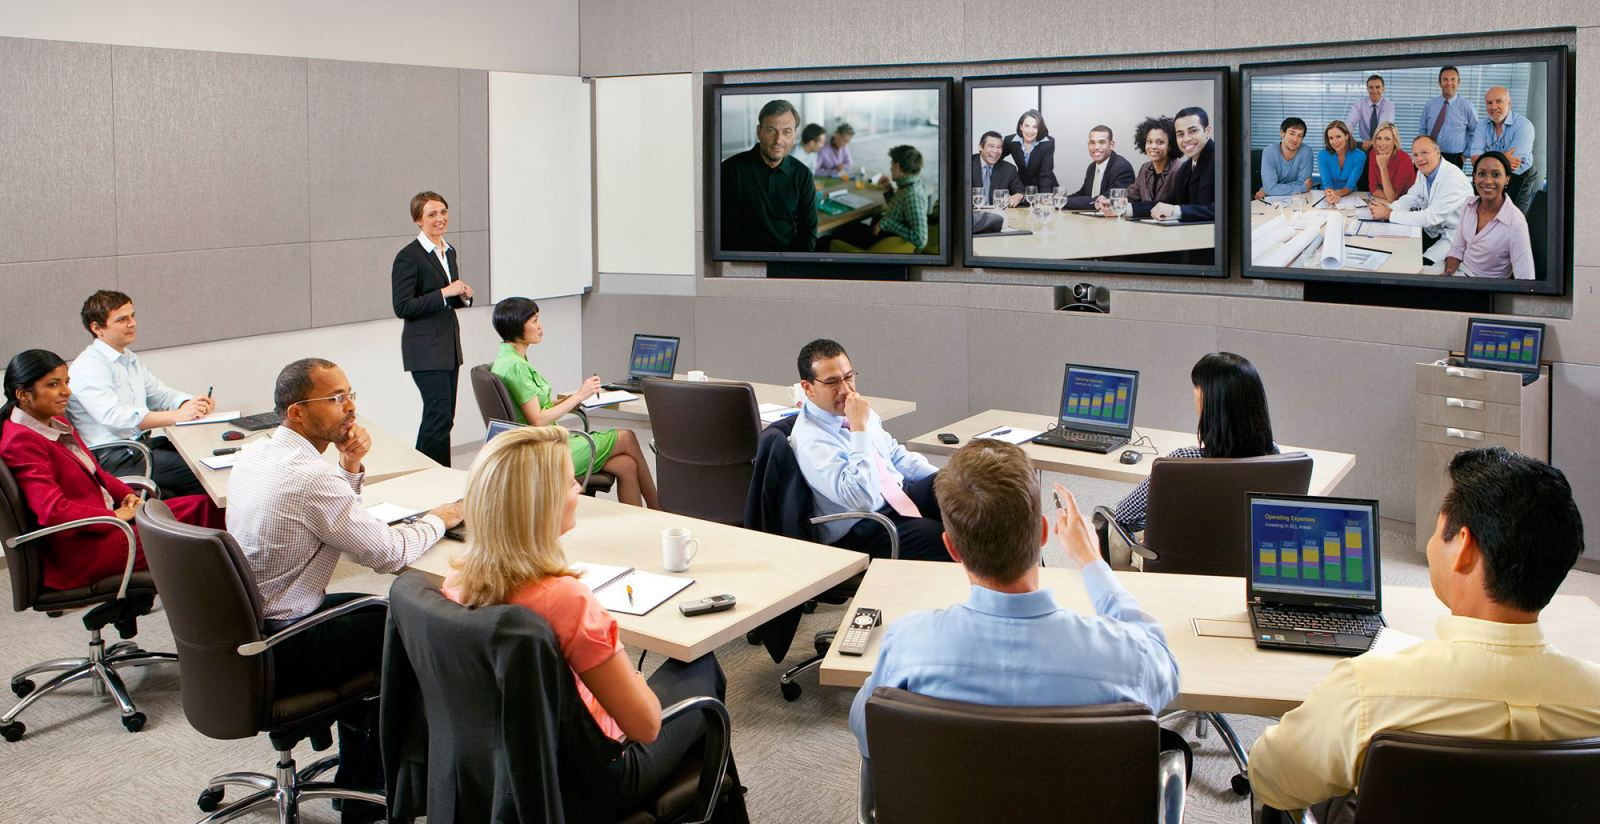 Cloud Video Conference (CVC)